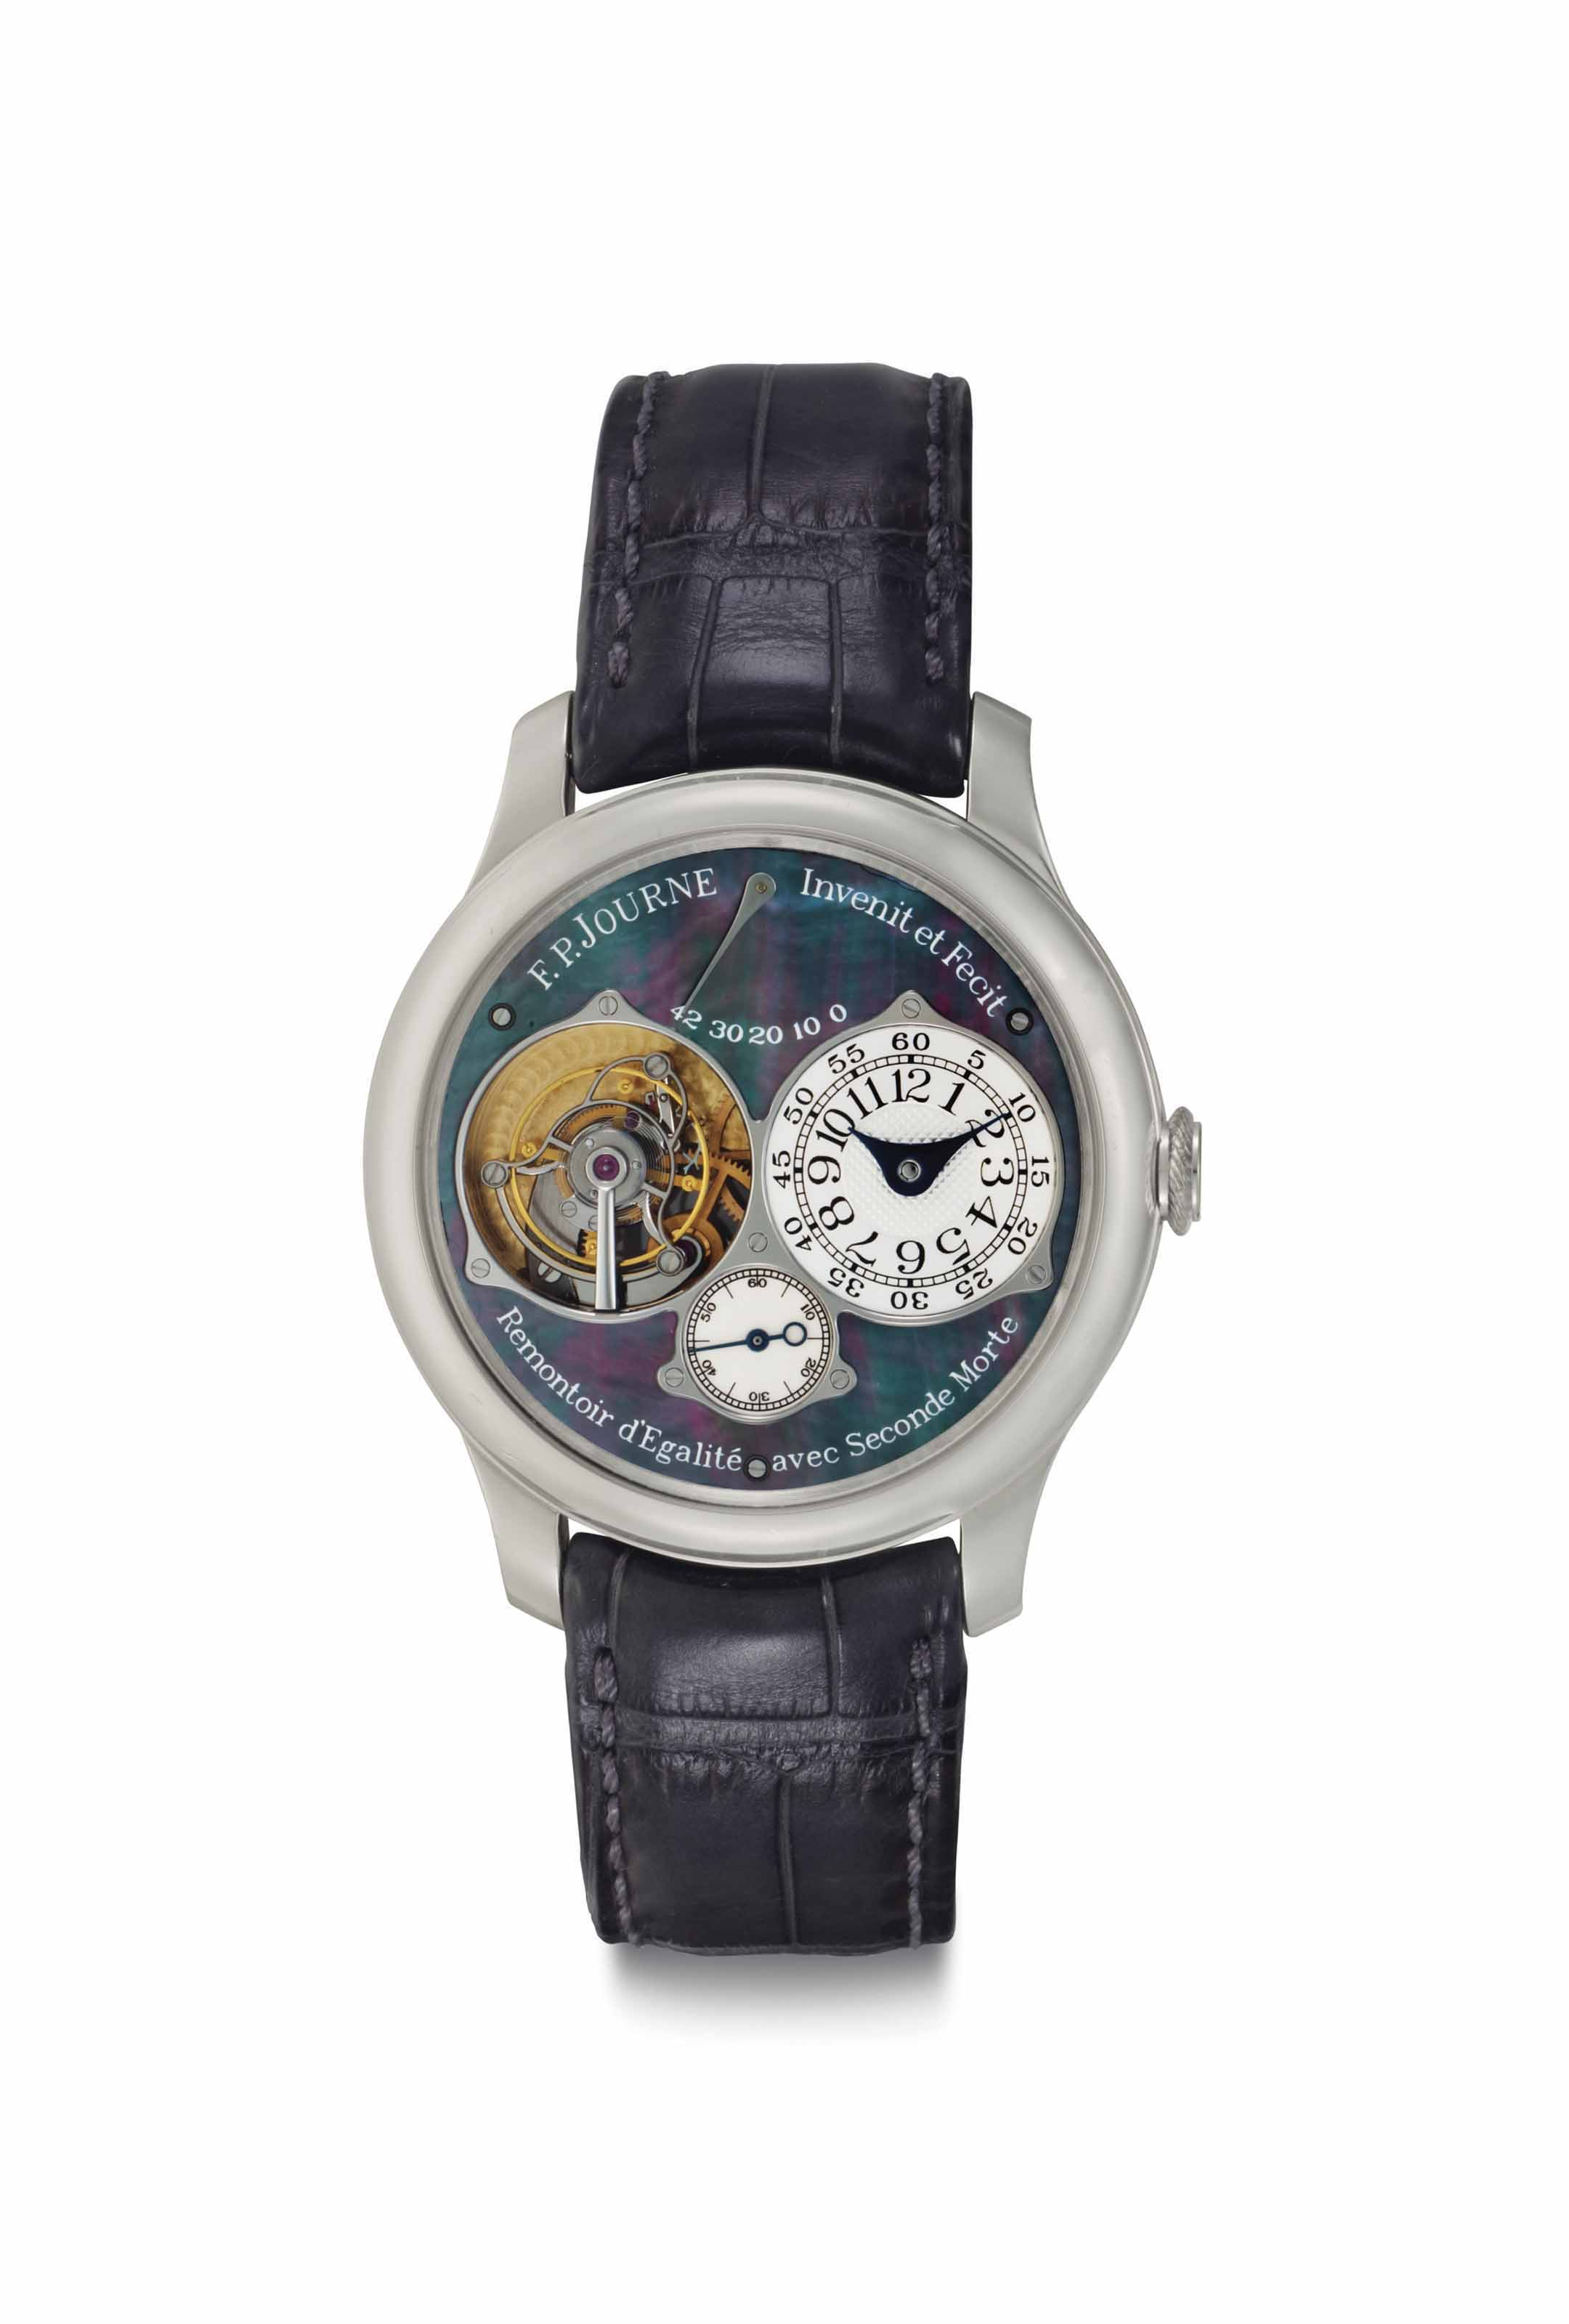 F.P.Journe. A Very Rare Platinum Limited Edition Tourbillon Wristwatch with Constant Force Remontoir, Power Reserve, Dead Beat Second and Black Mother-of-Pearl Dial